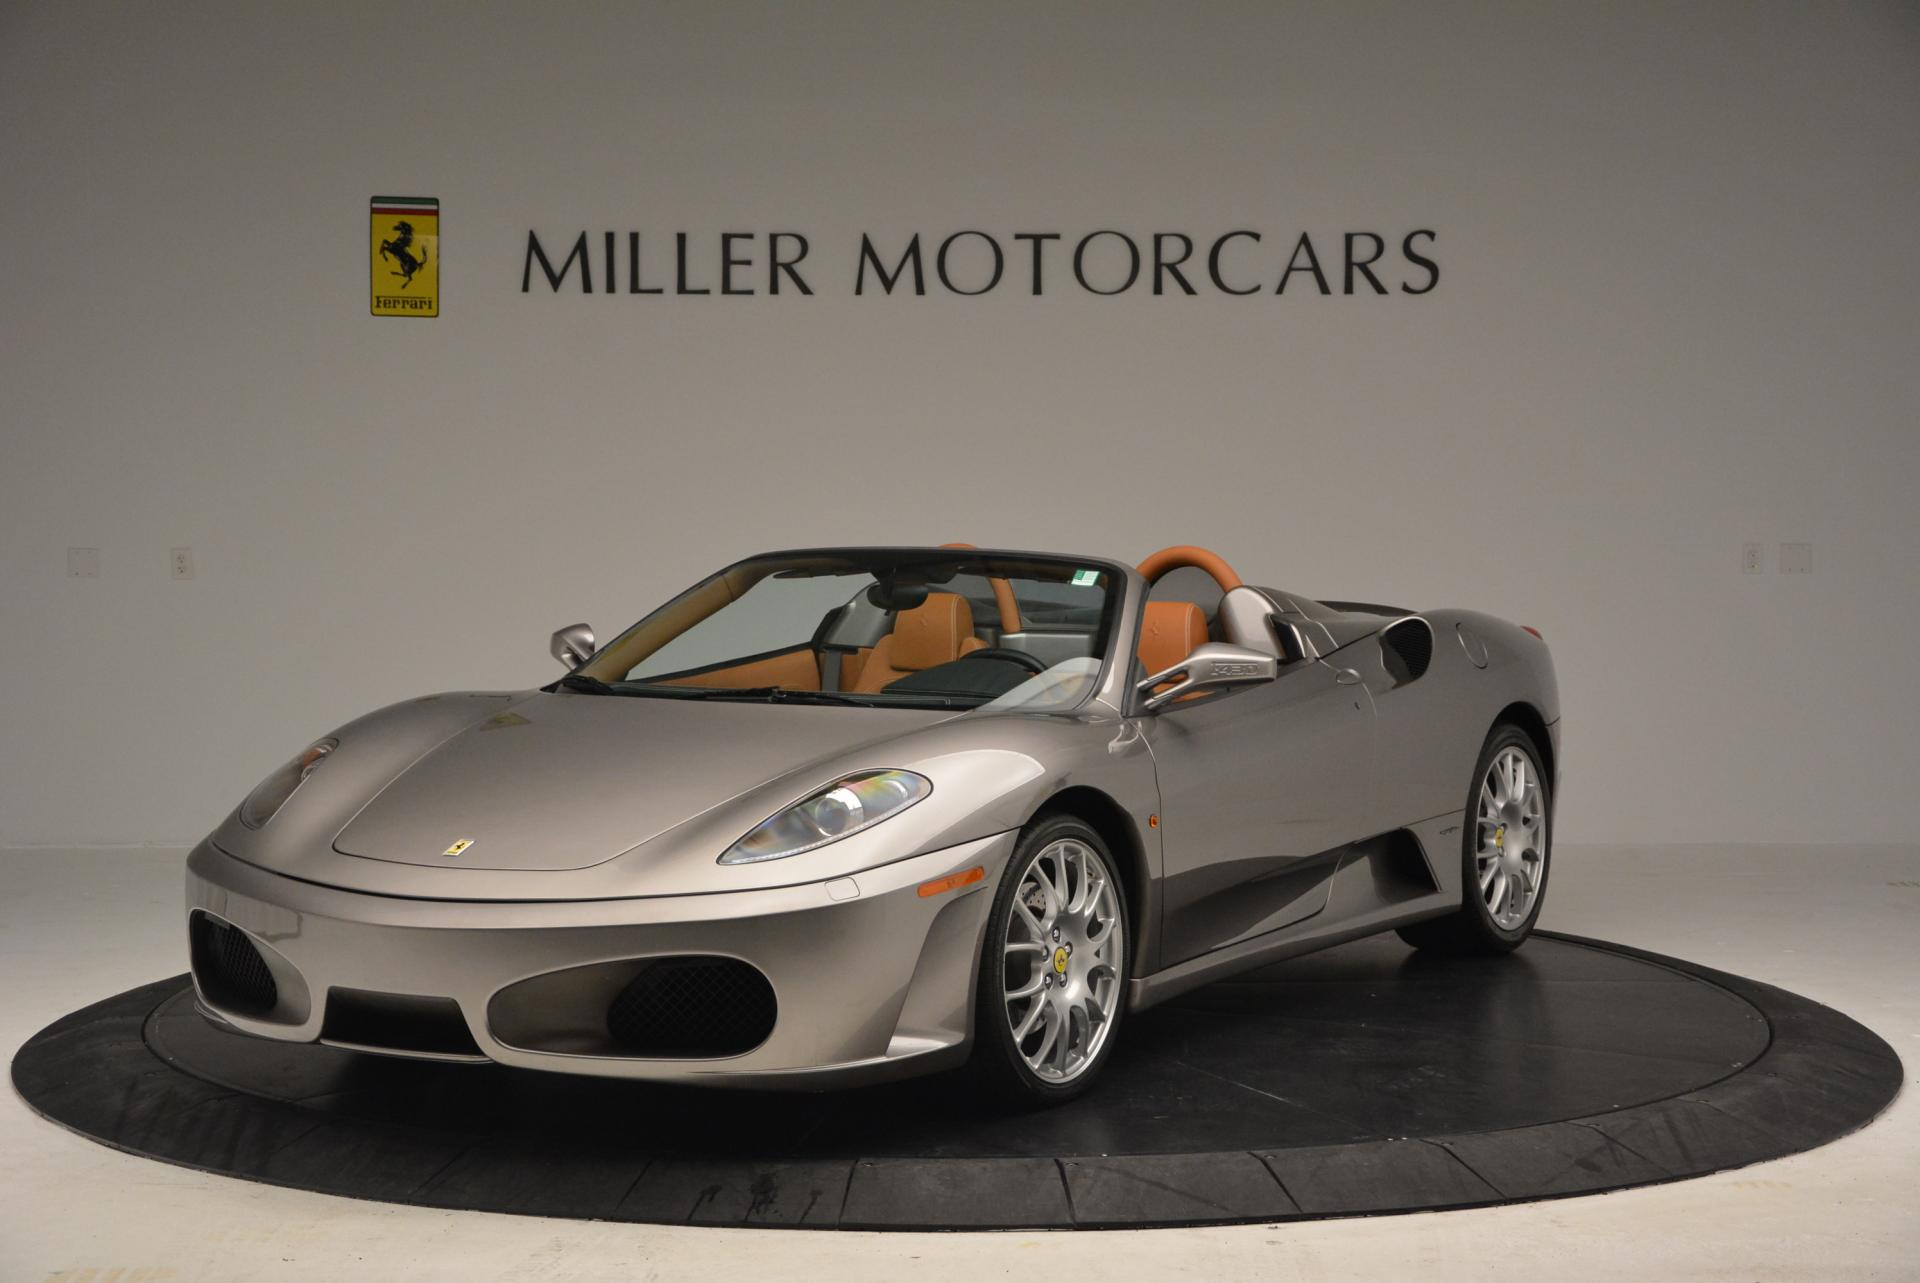 Used 2005 Ferrari F430 Spider 6-Speed Manual for sale Sold at Rolls-Royce Motor Cars Greenwich in Greenwich CT 06830 1